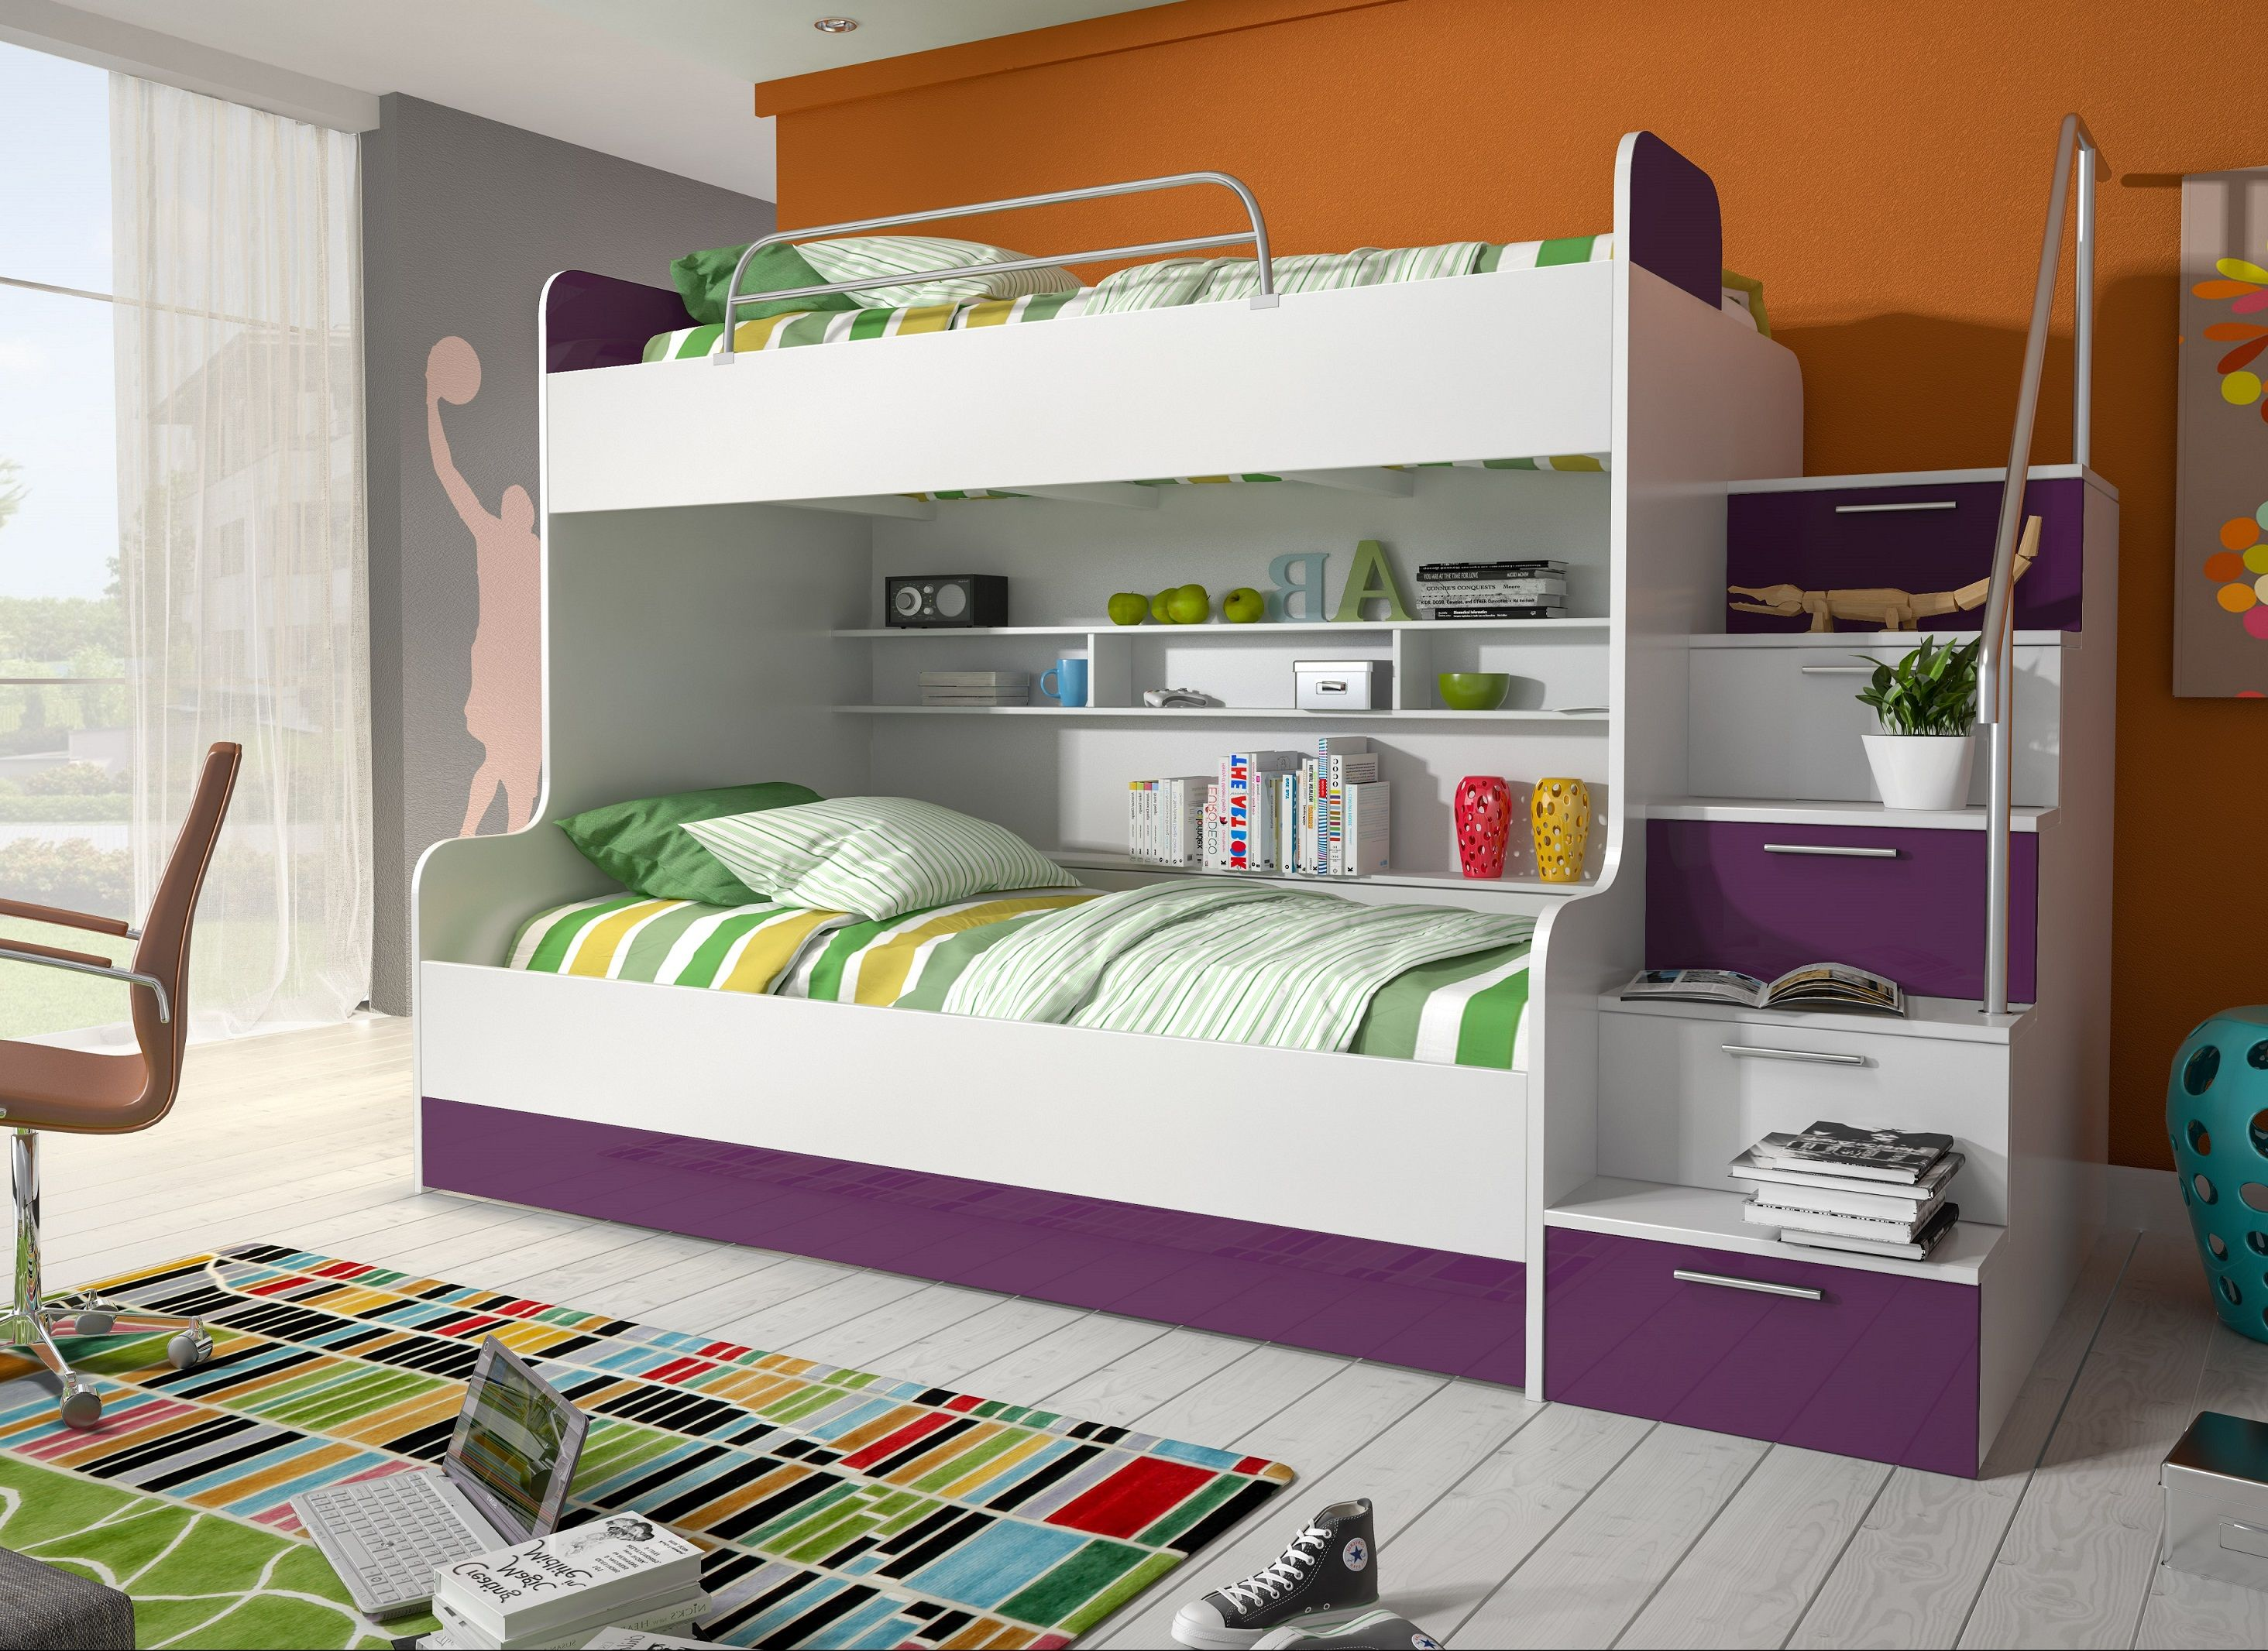 etagenbett kinderbett lila mit seitlicher treppe rechts. Black Bedroom Furniture Sets. Home Design Ideas